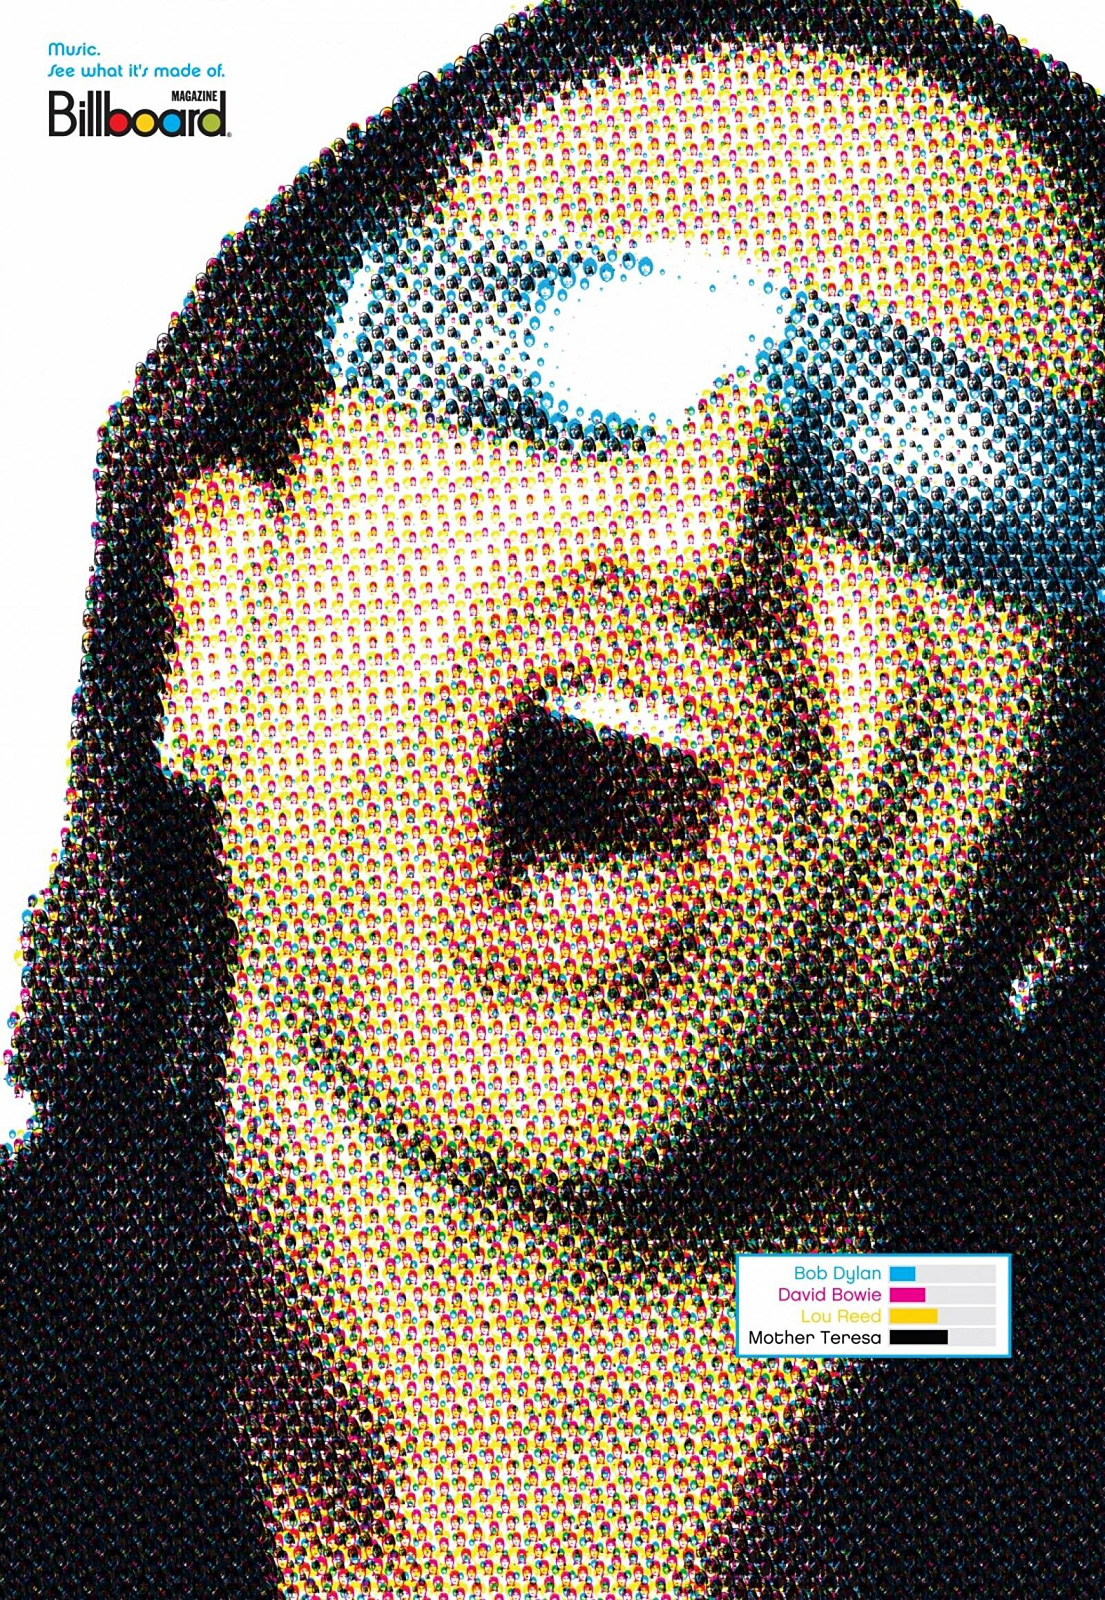 cannes_billboard-magazine-bono